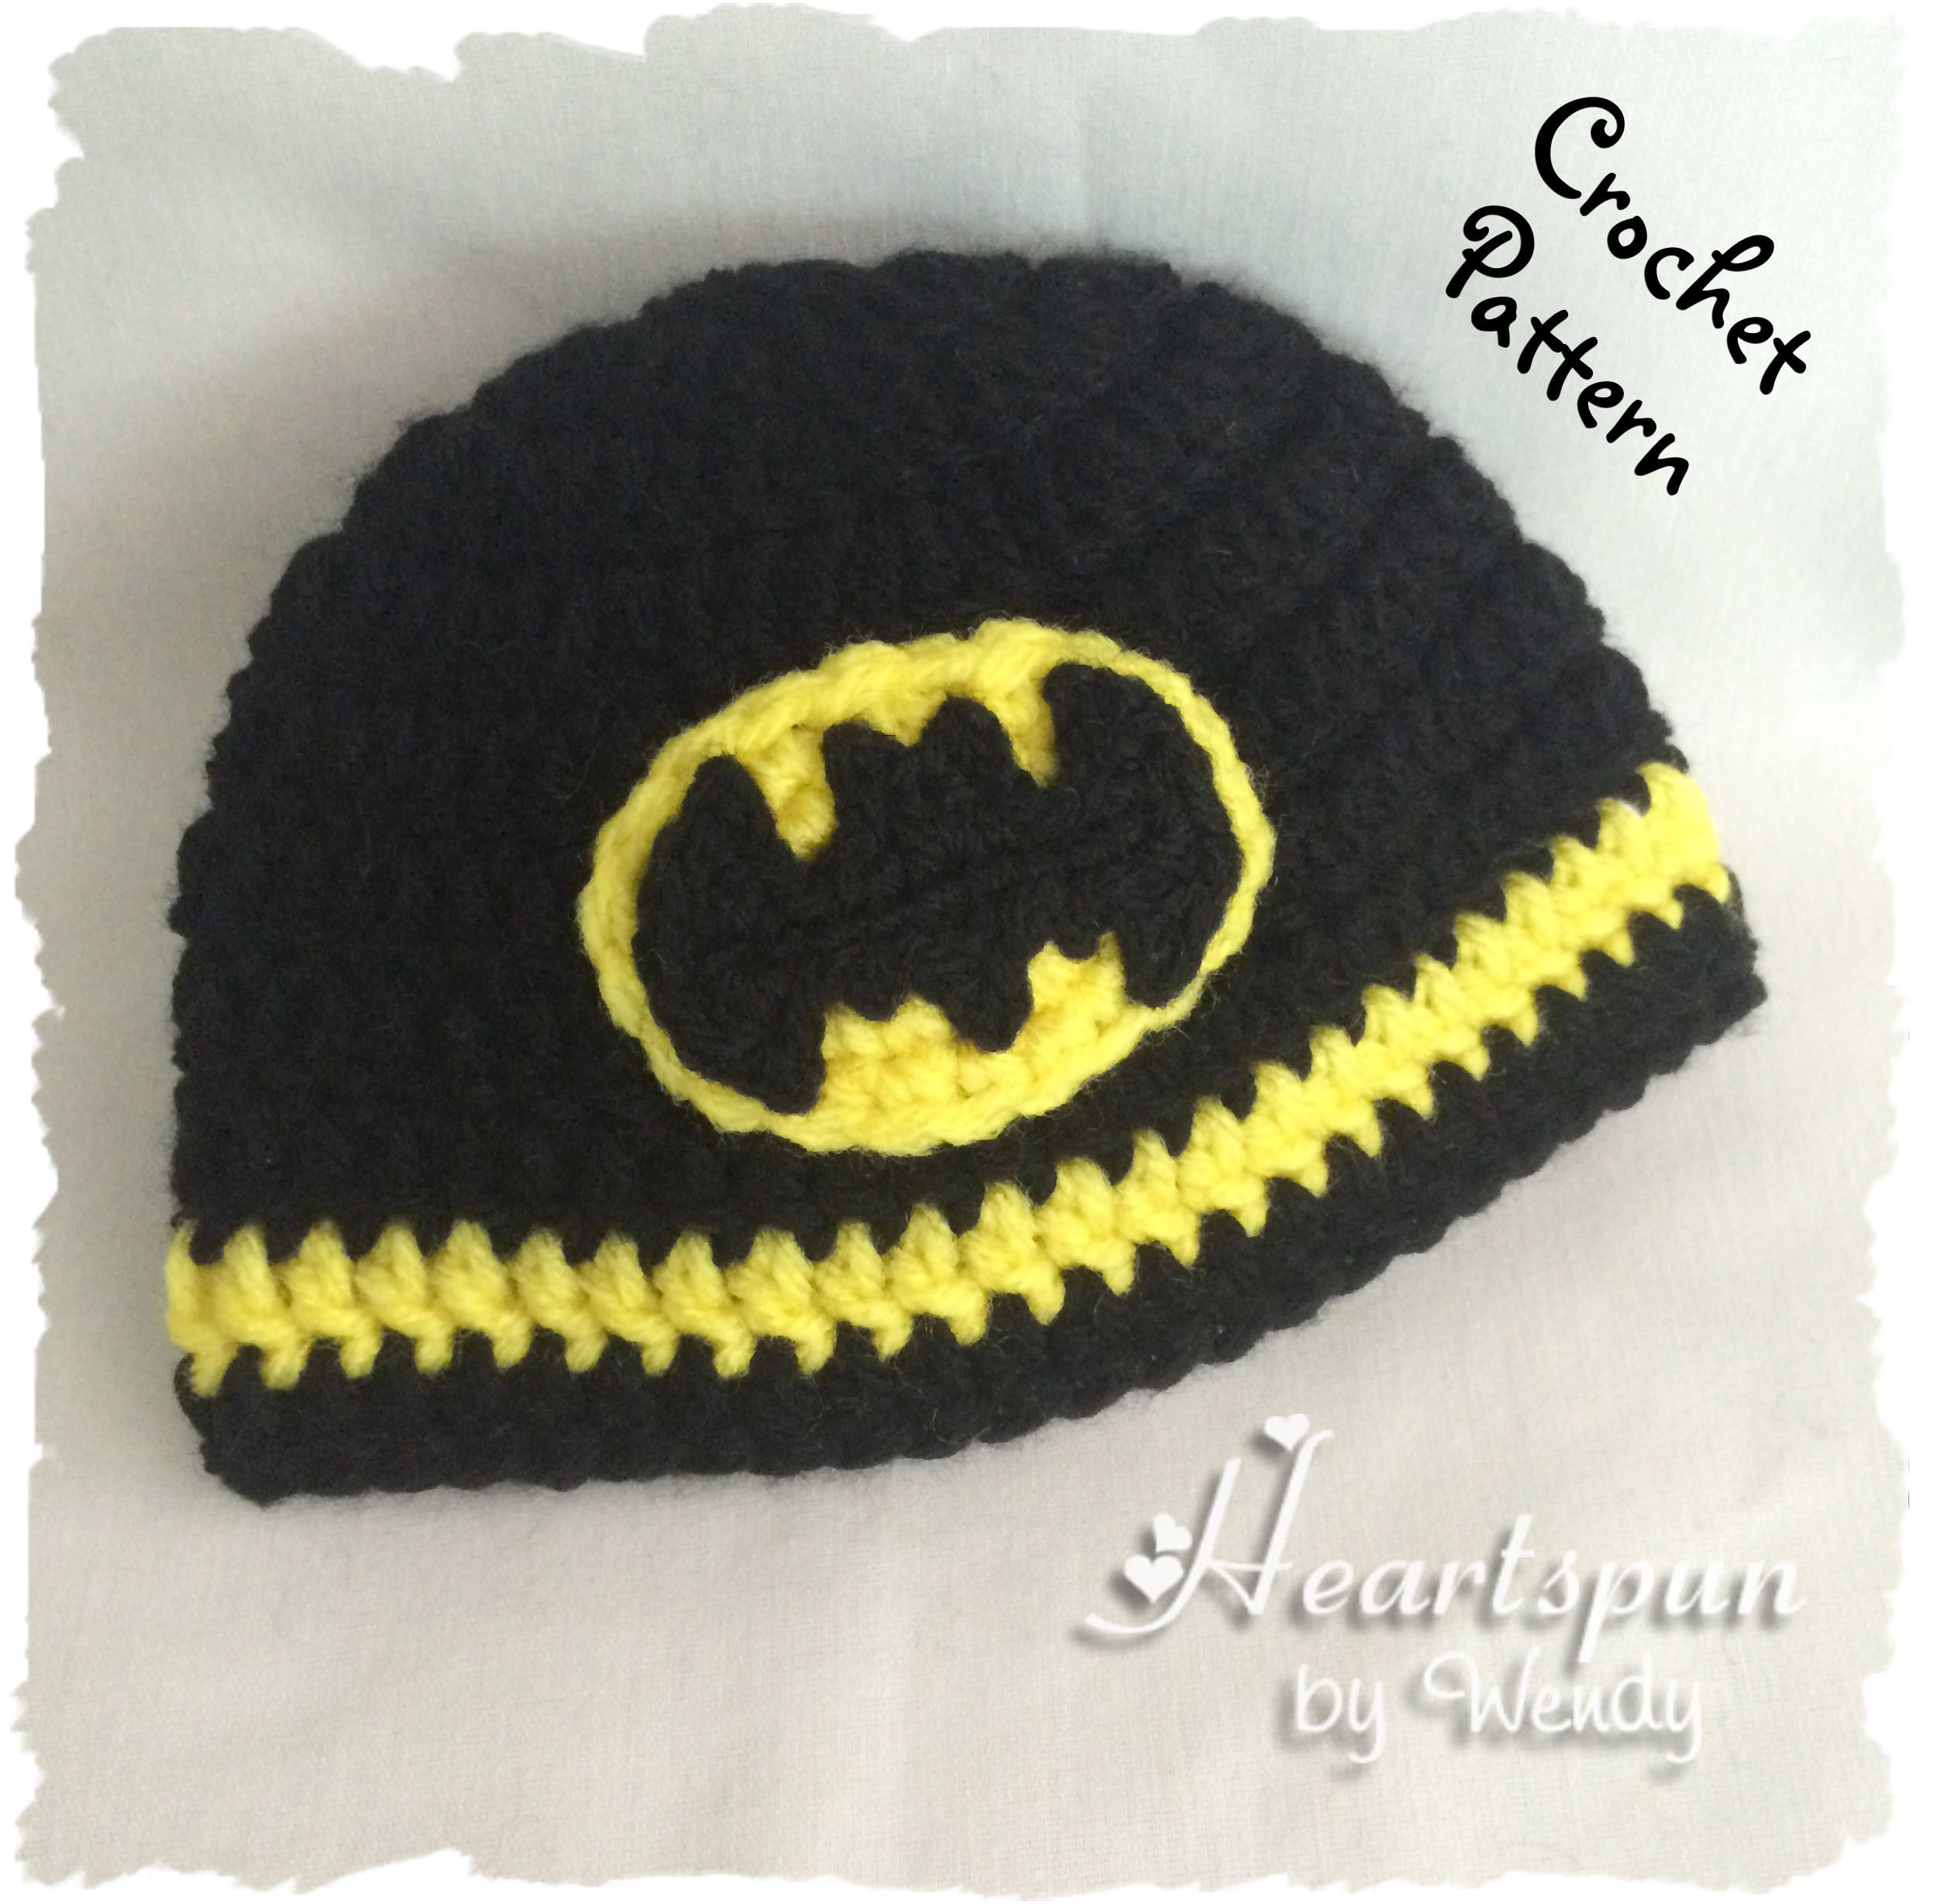 Crochet Pattern To Make A Batman Hat In 8 Sizes Baby To Adult And